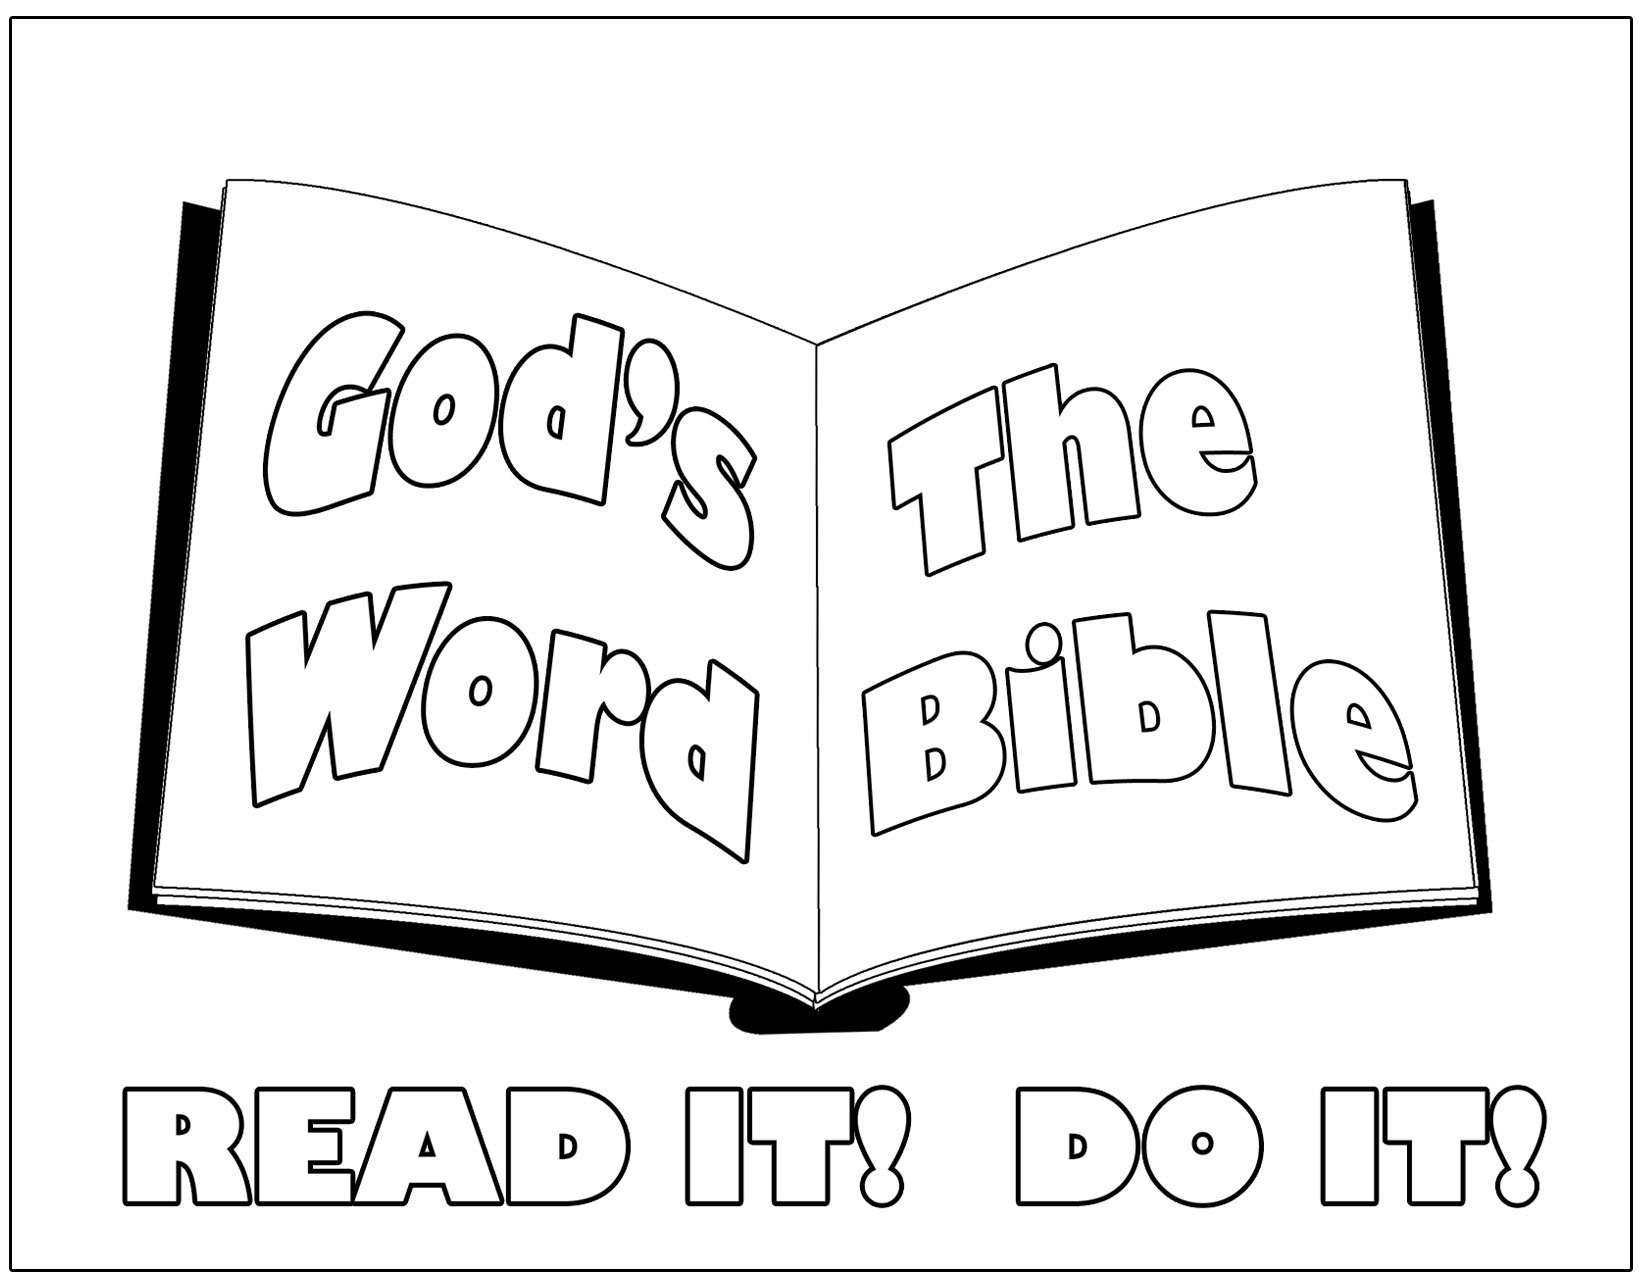 Free bible story coloring pages for kids - Free Bible Coloring Pages